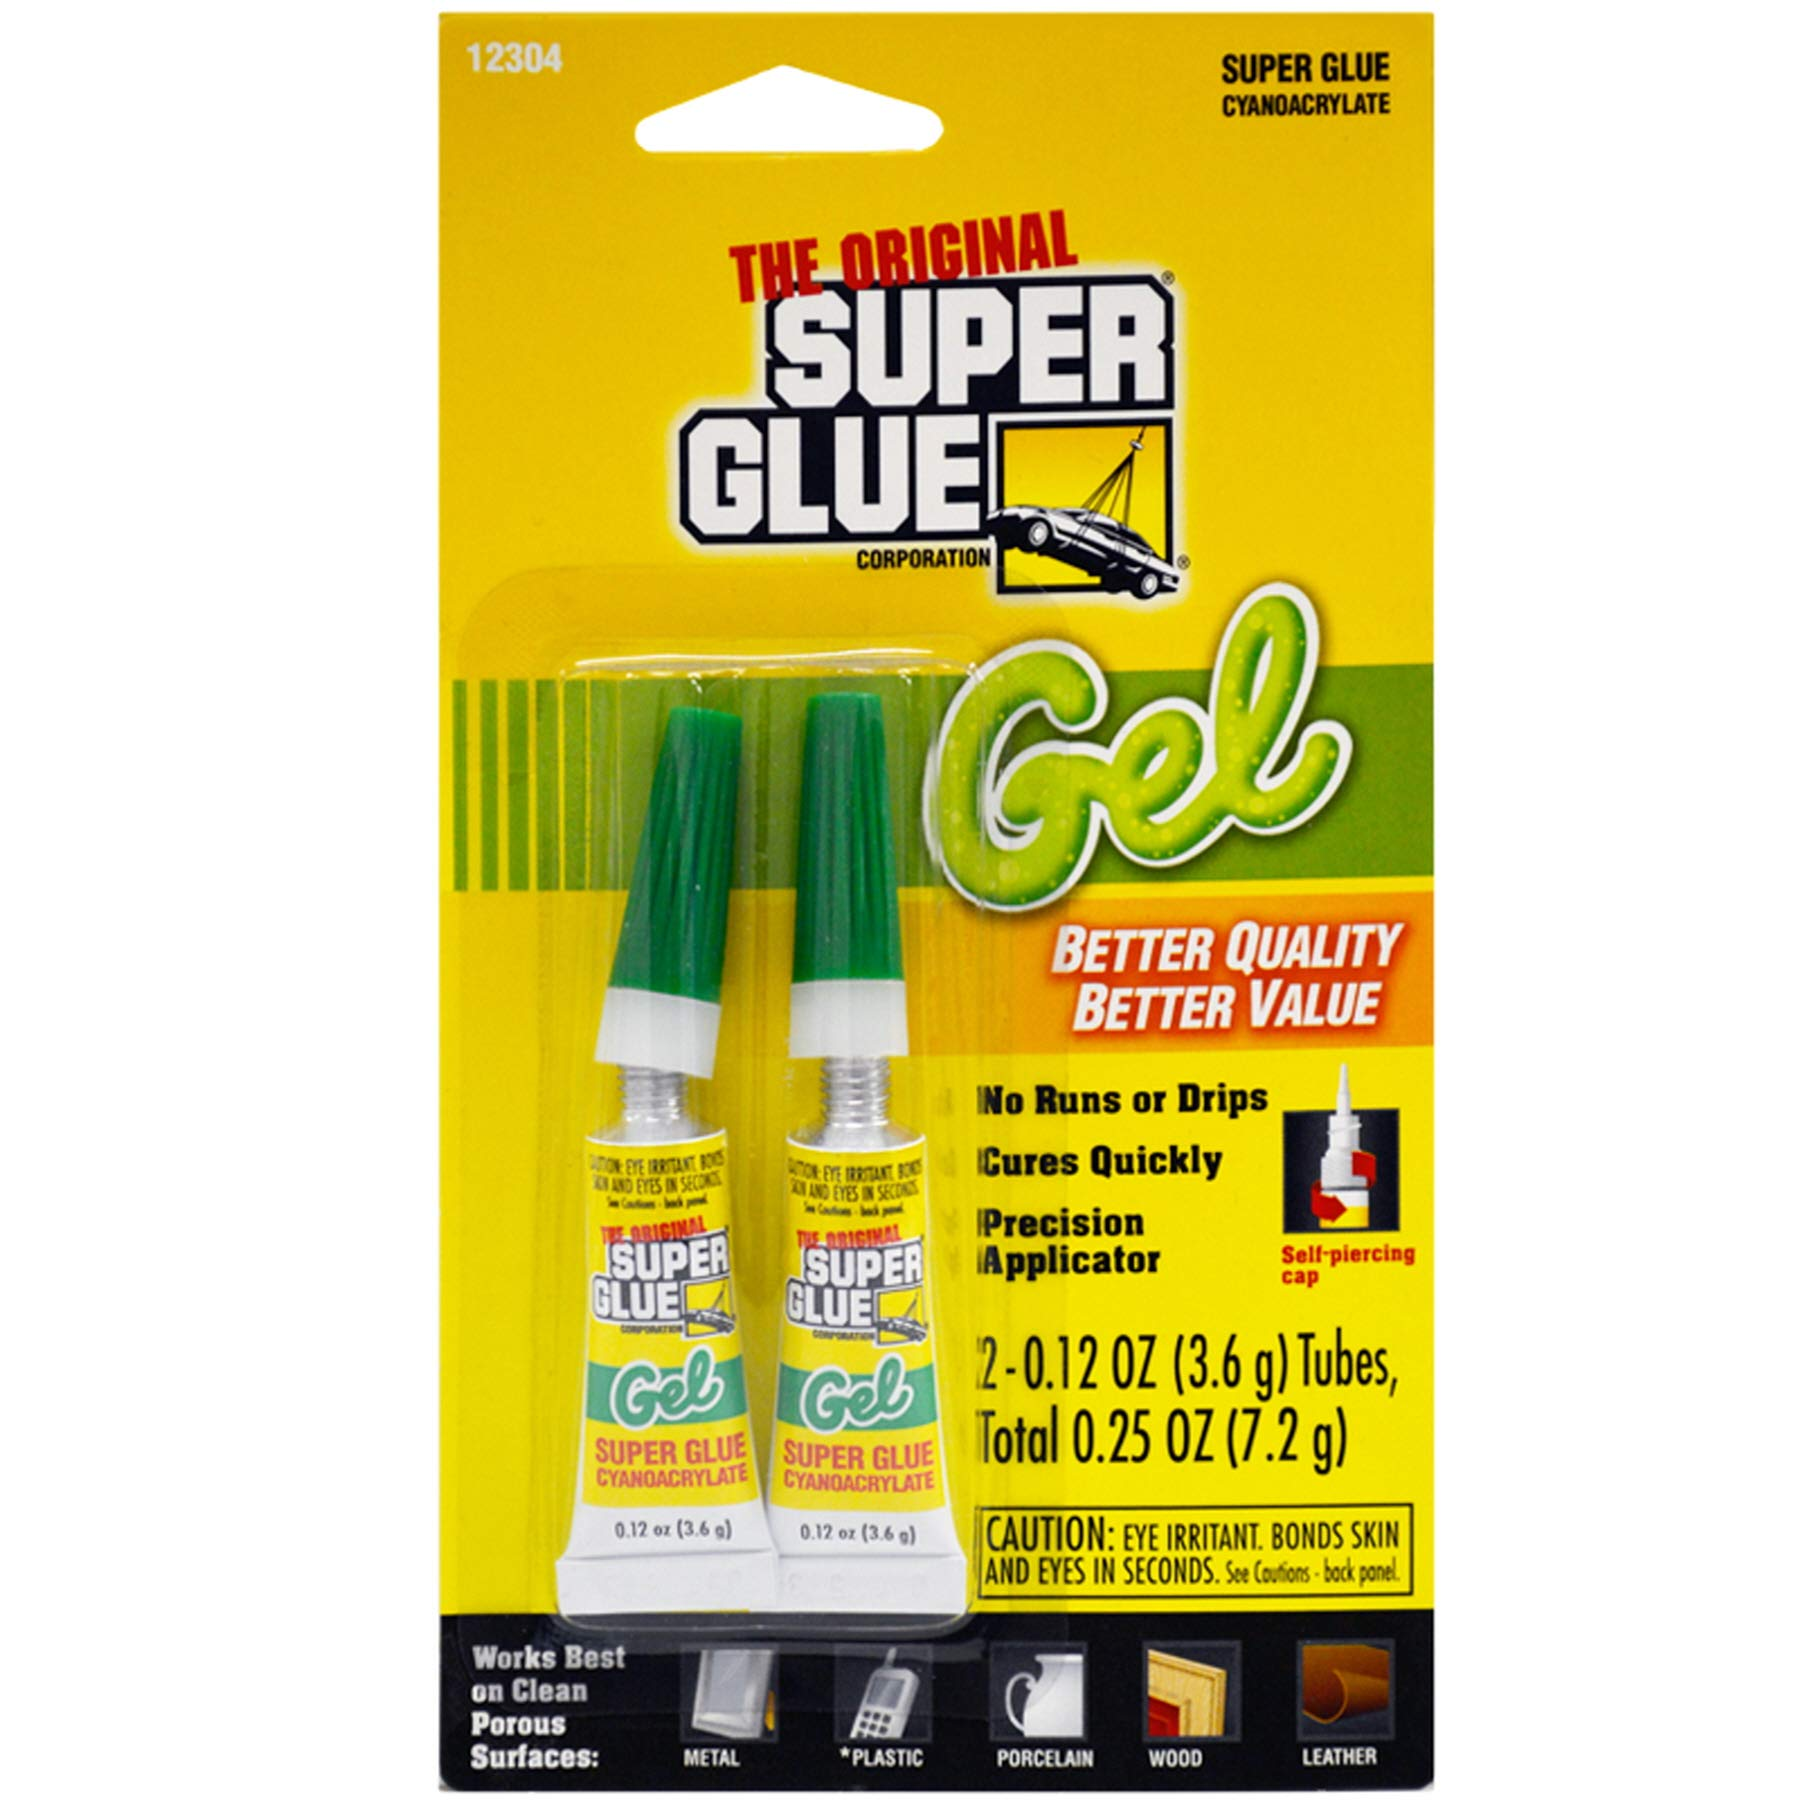 (Pack of 24) Pacer The Original Super Glue Super Glue Thick Gel, 2-Pack 2Gm by Unknown (Image #1)